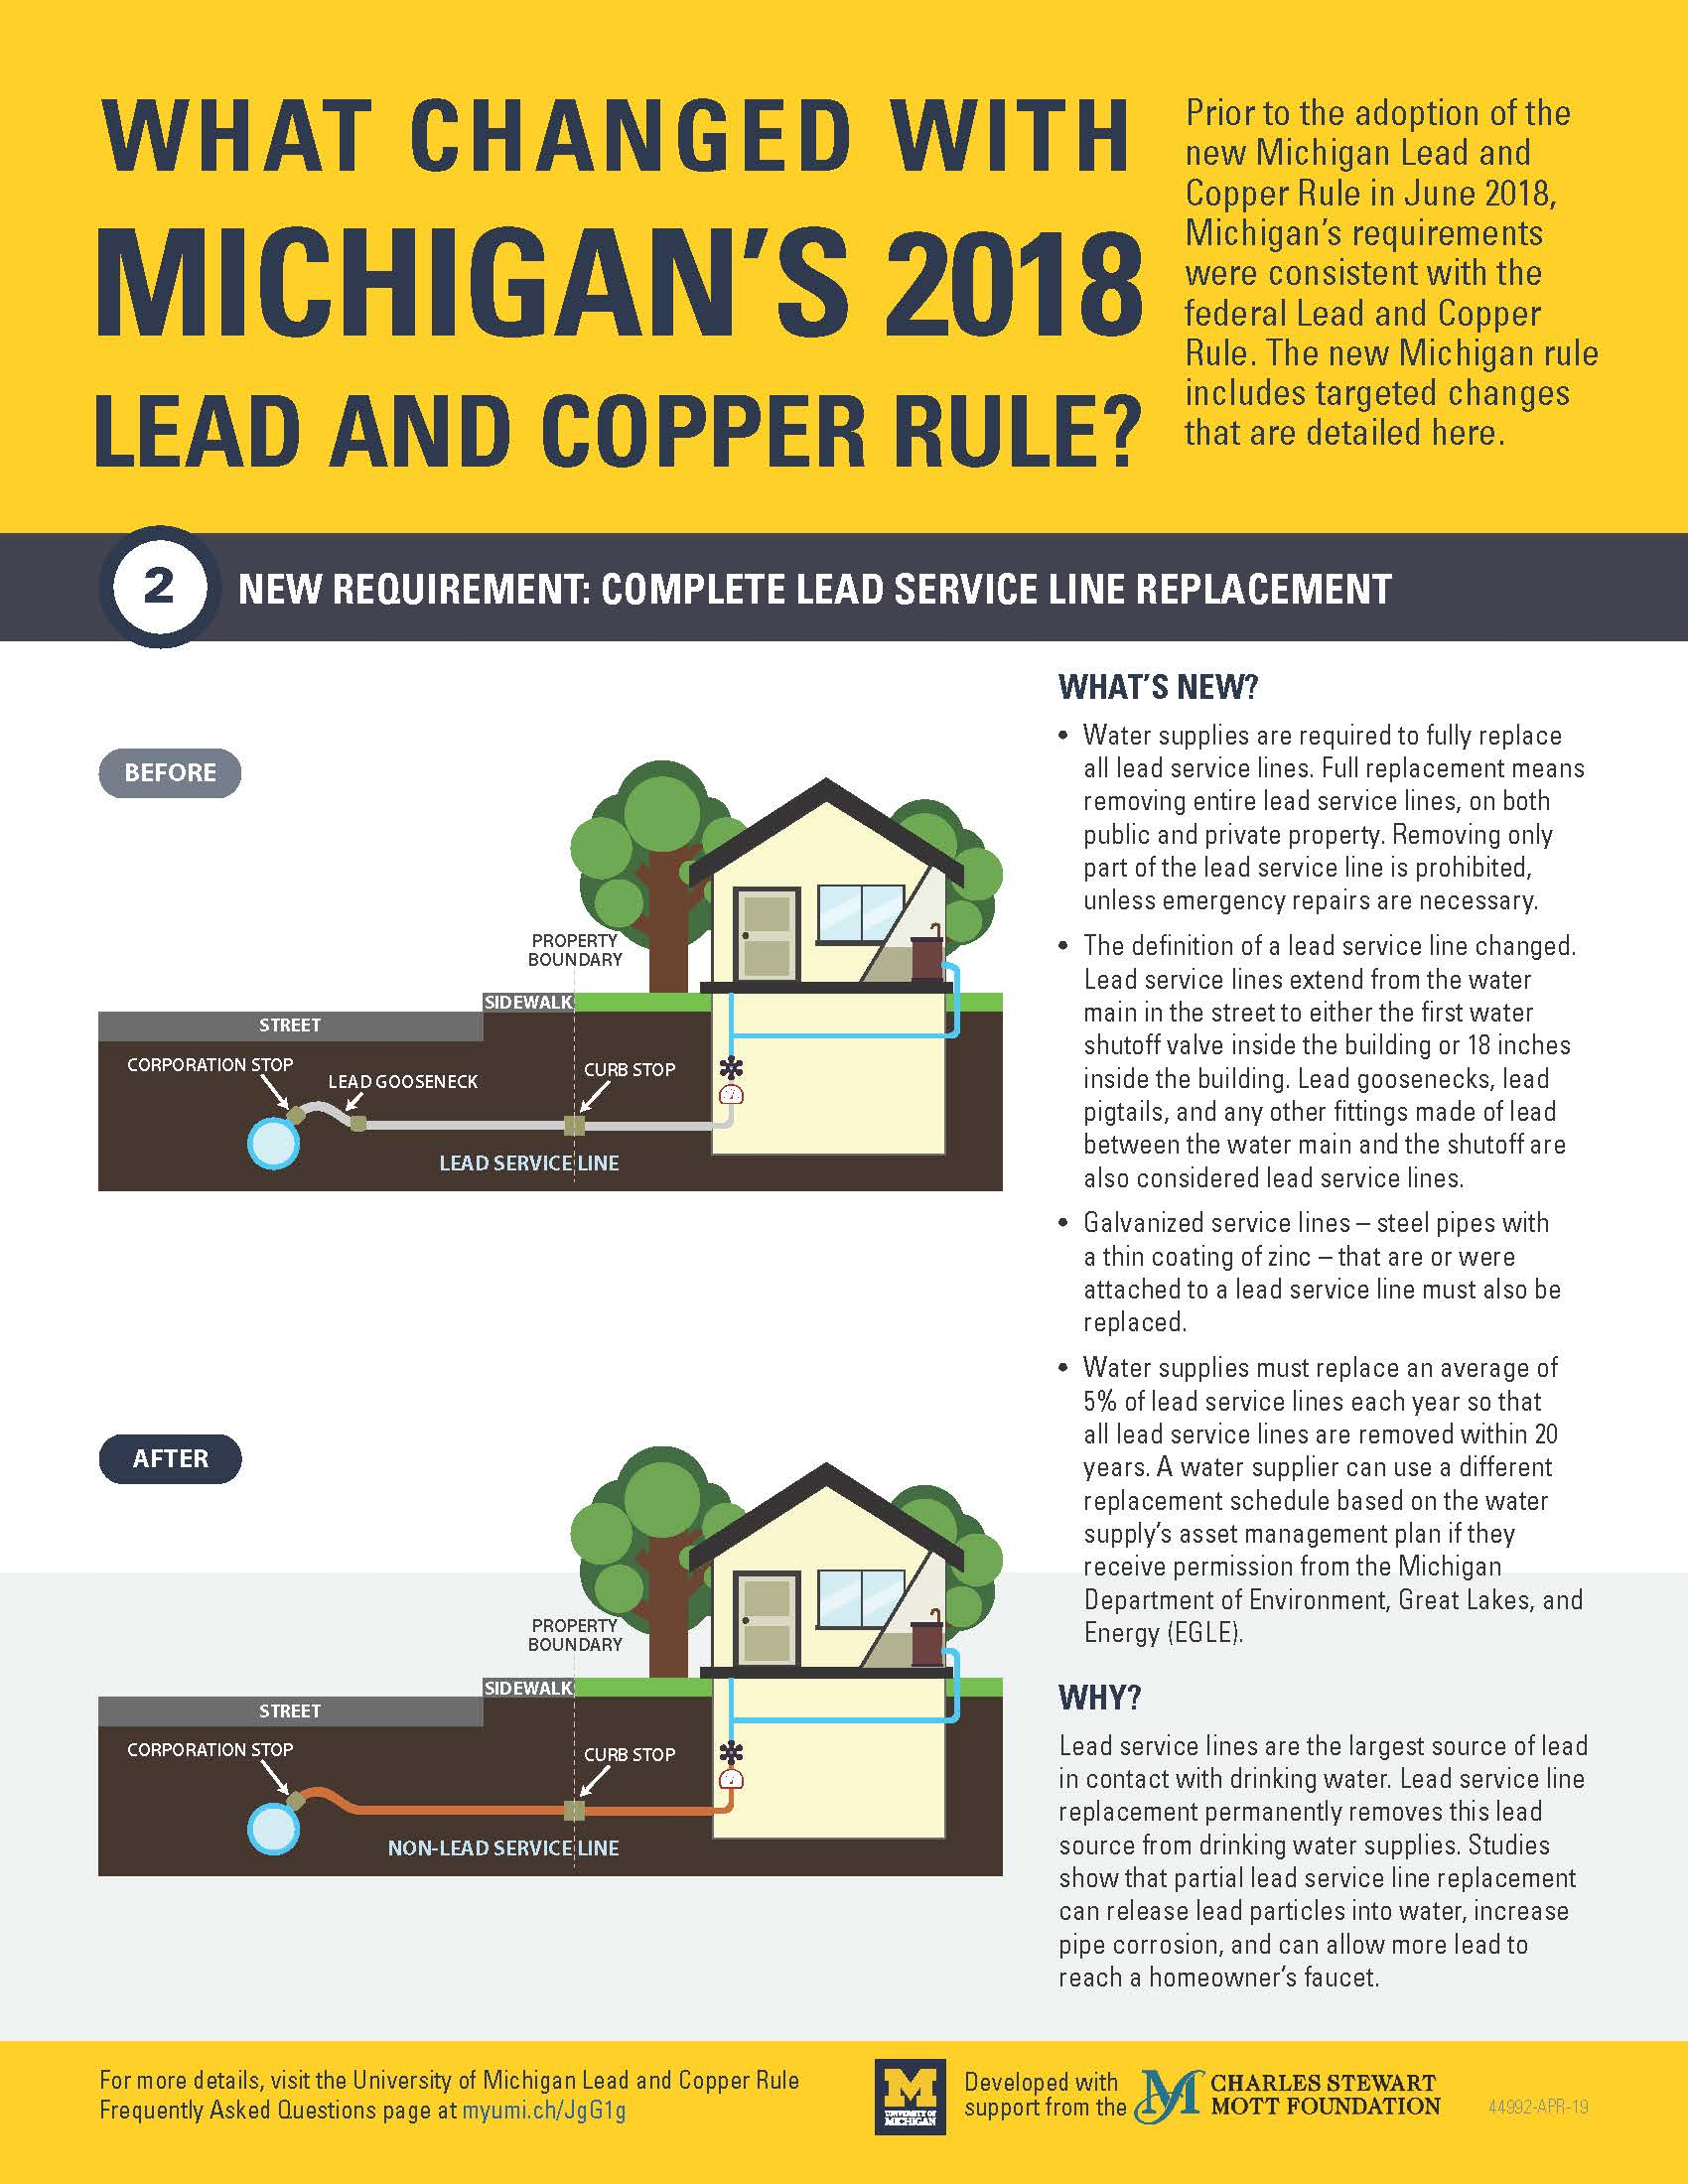 Infographic displaying information on Michigan's Lead and Copper Rule